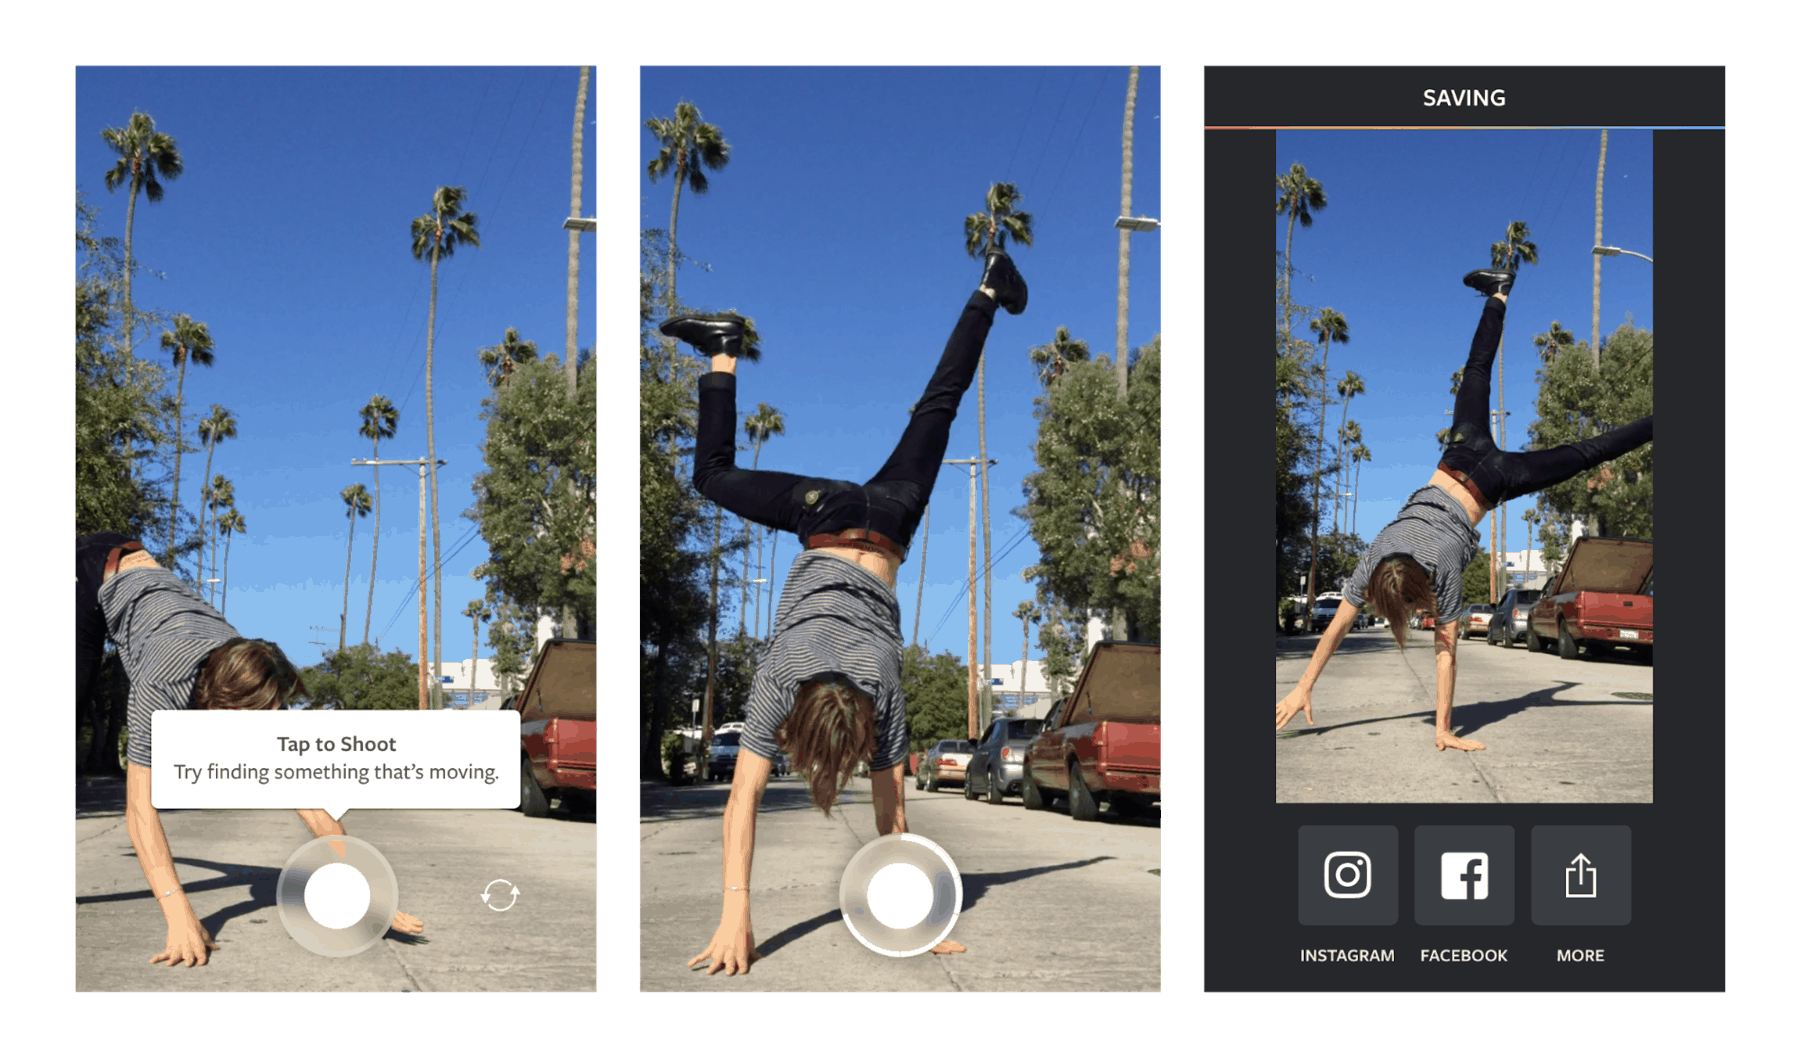 How to Do Boomerang on Instagram